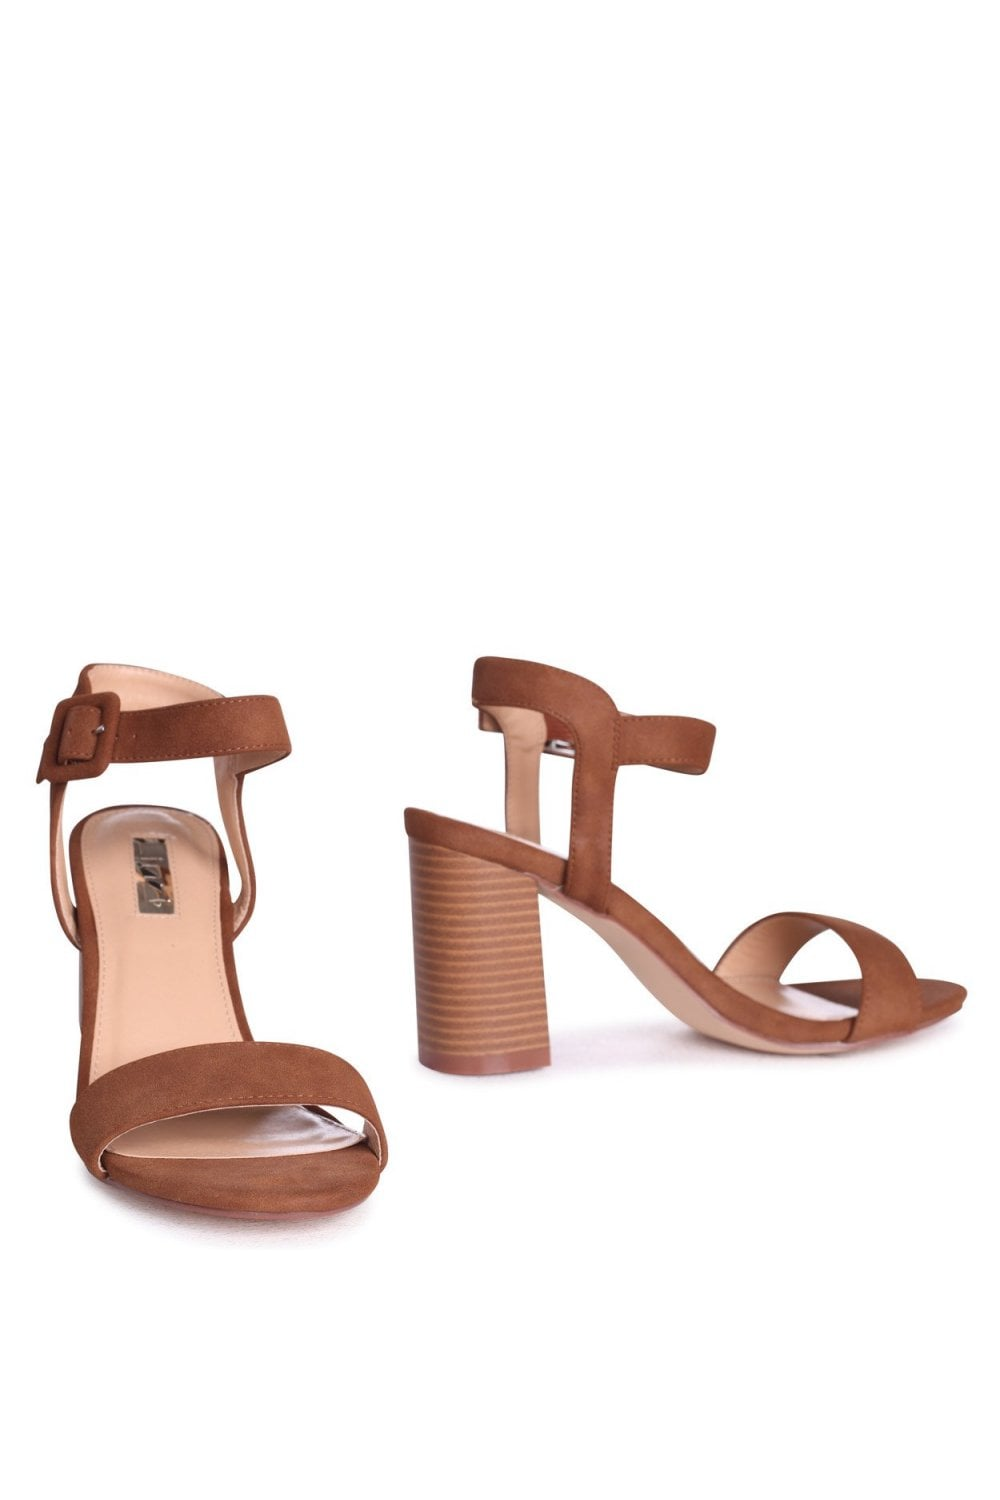 a7a148db6c0c ... Linzi KATE - Tan Suede Open Toe Stacked Block Heel With Ankle Strap ...